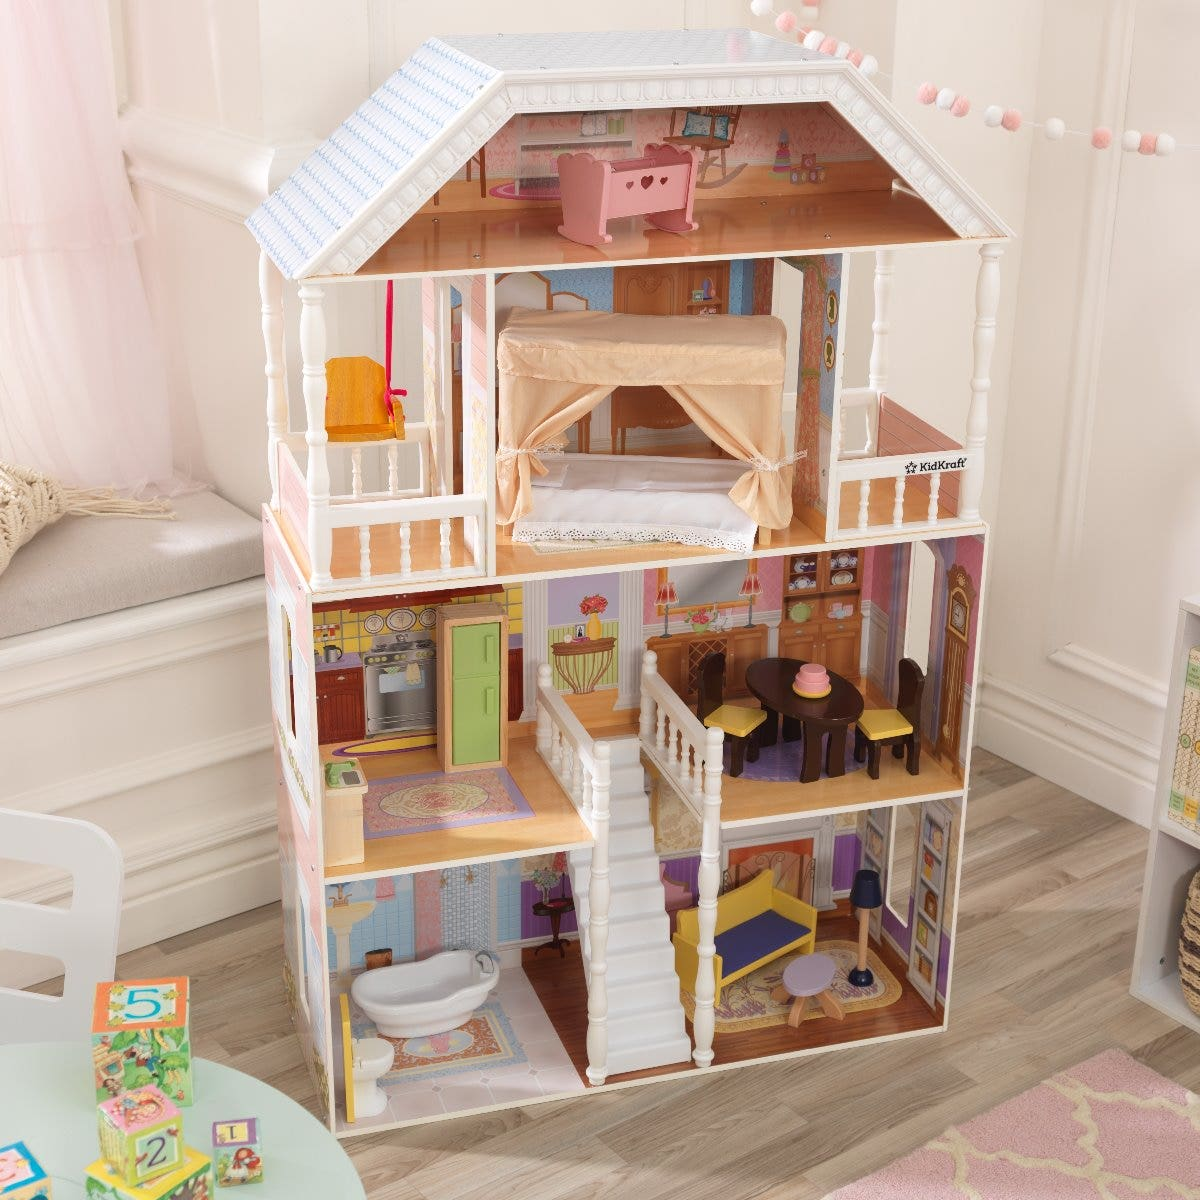 Play sooner without the headache from overcomplicated assemblies! Our doll houses come with incredibly easy step-by-step instructions for even easier assembling.